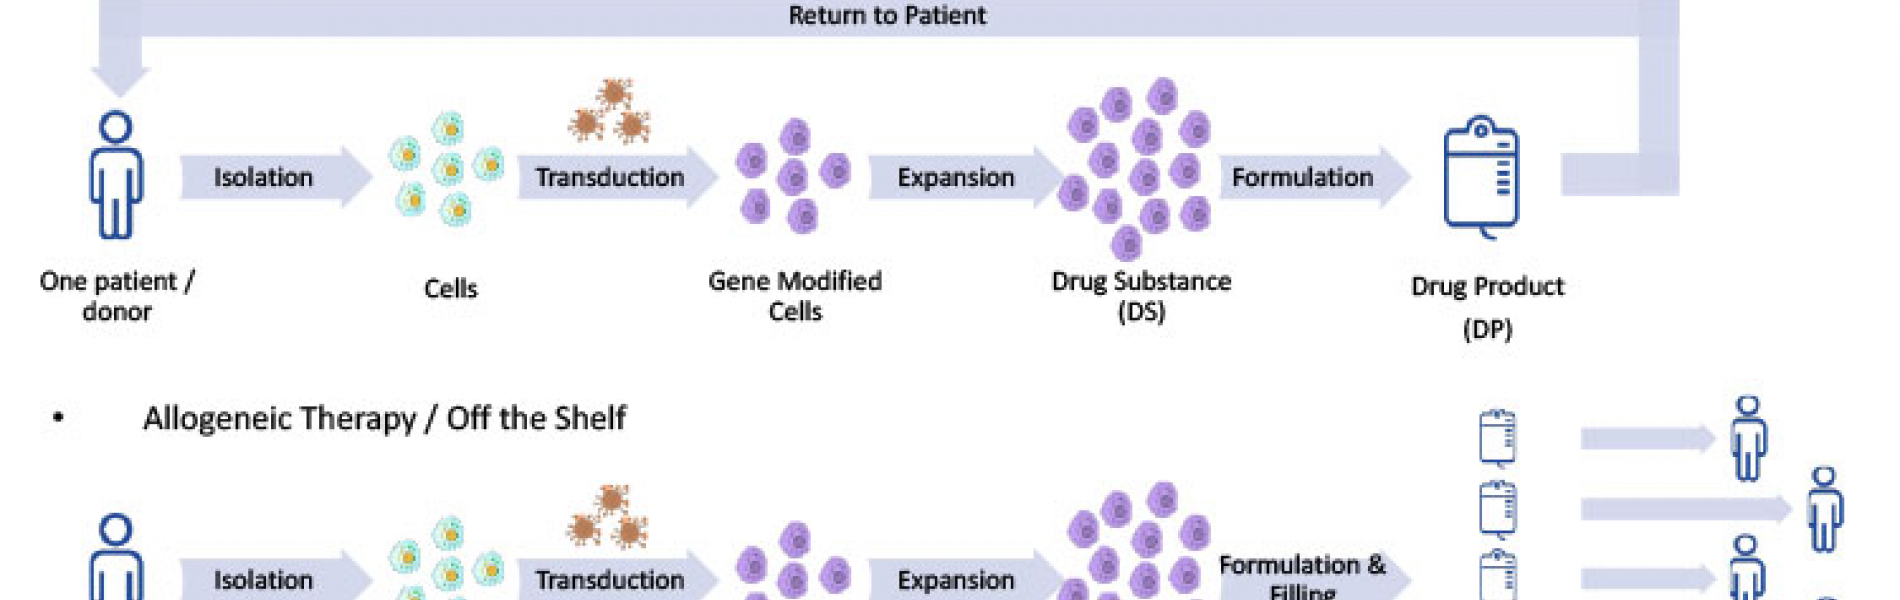 Figure 1: Cell therapy life cycles.